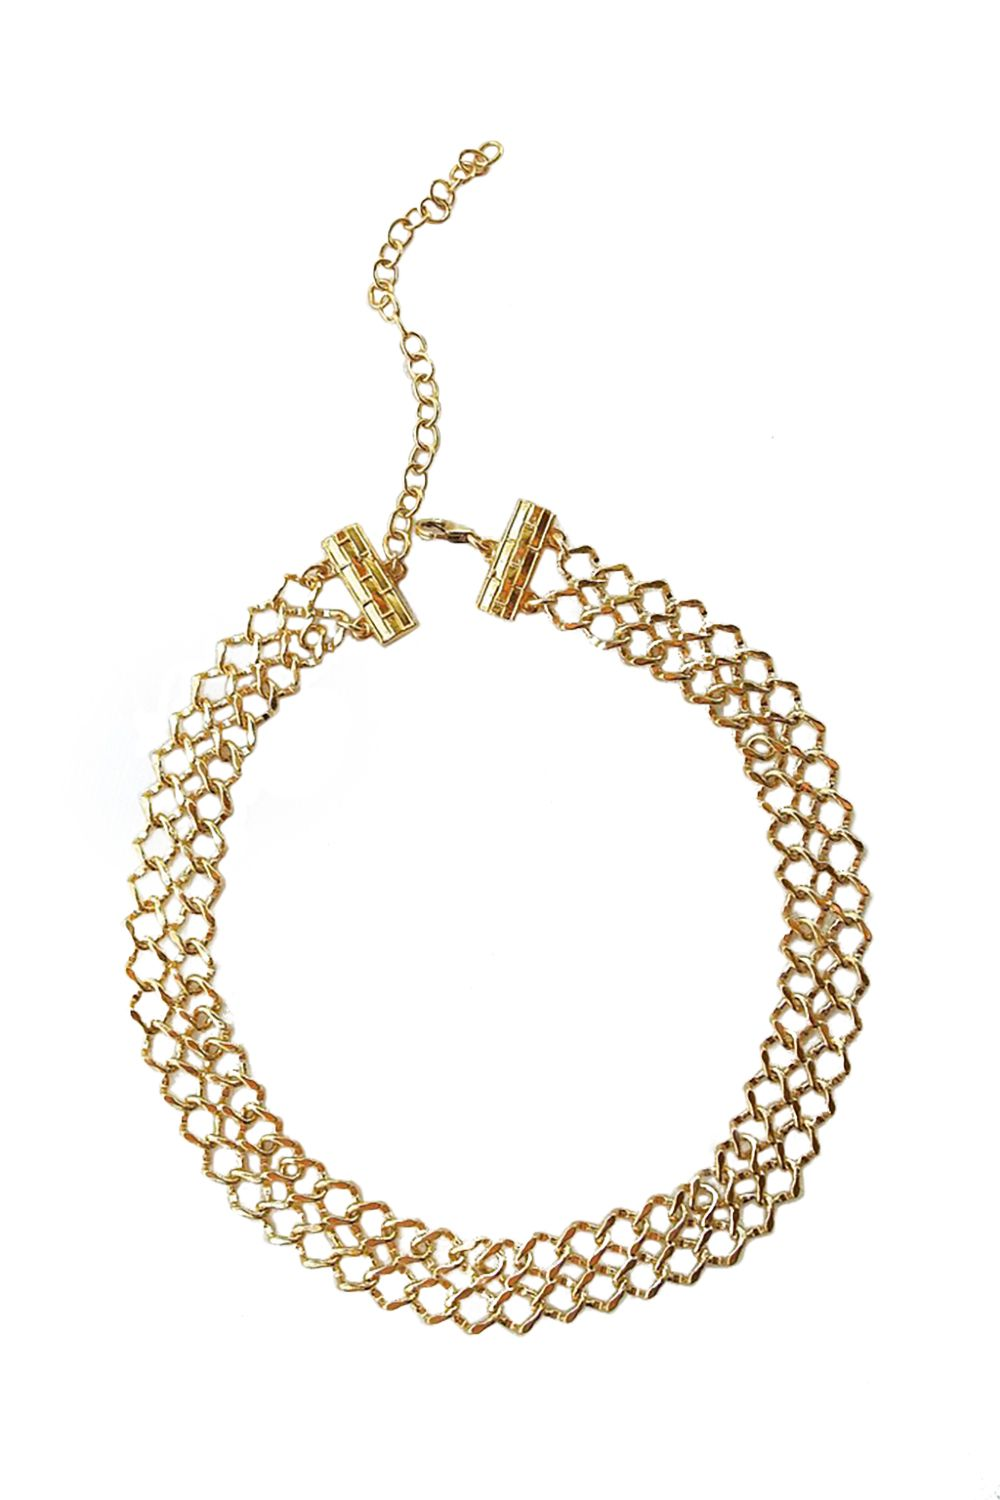 """<p>Typically, we go for something a bit more original than aping celebrity style, but we'd gladly make an exception for this chain mail number, worn by everyone from Chrissy Teigen to half the Kardashians. </p><p>$99, <a href=""""http://www.liliclaspe.com/collections/chokers/products/lana-choker?variant=1117059001"""" target=""""_blank"""">liliclaspe.com</a>.</p>"""